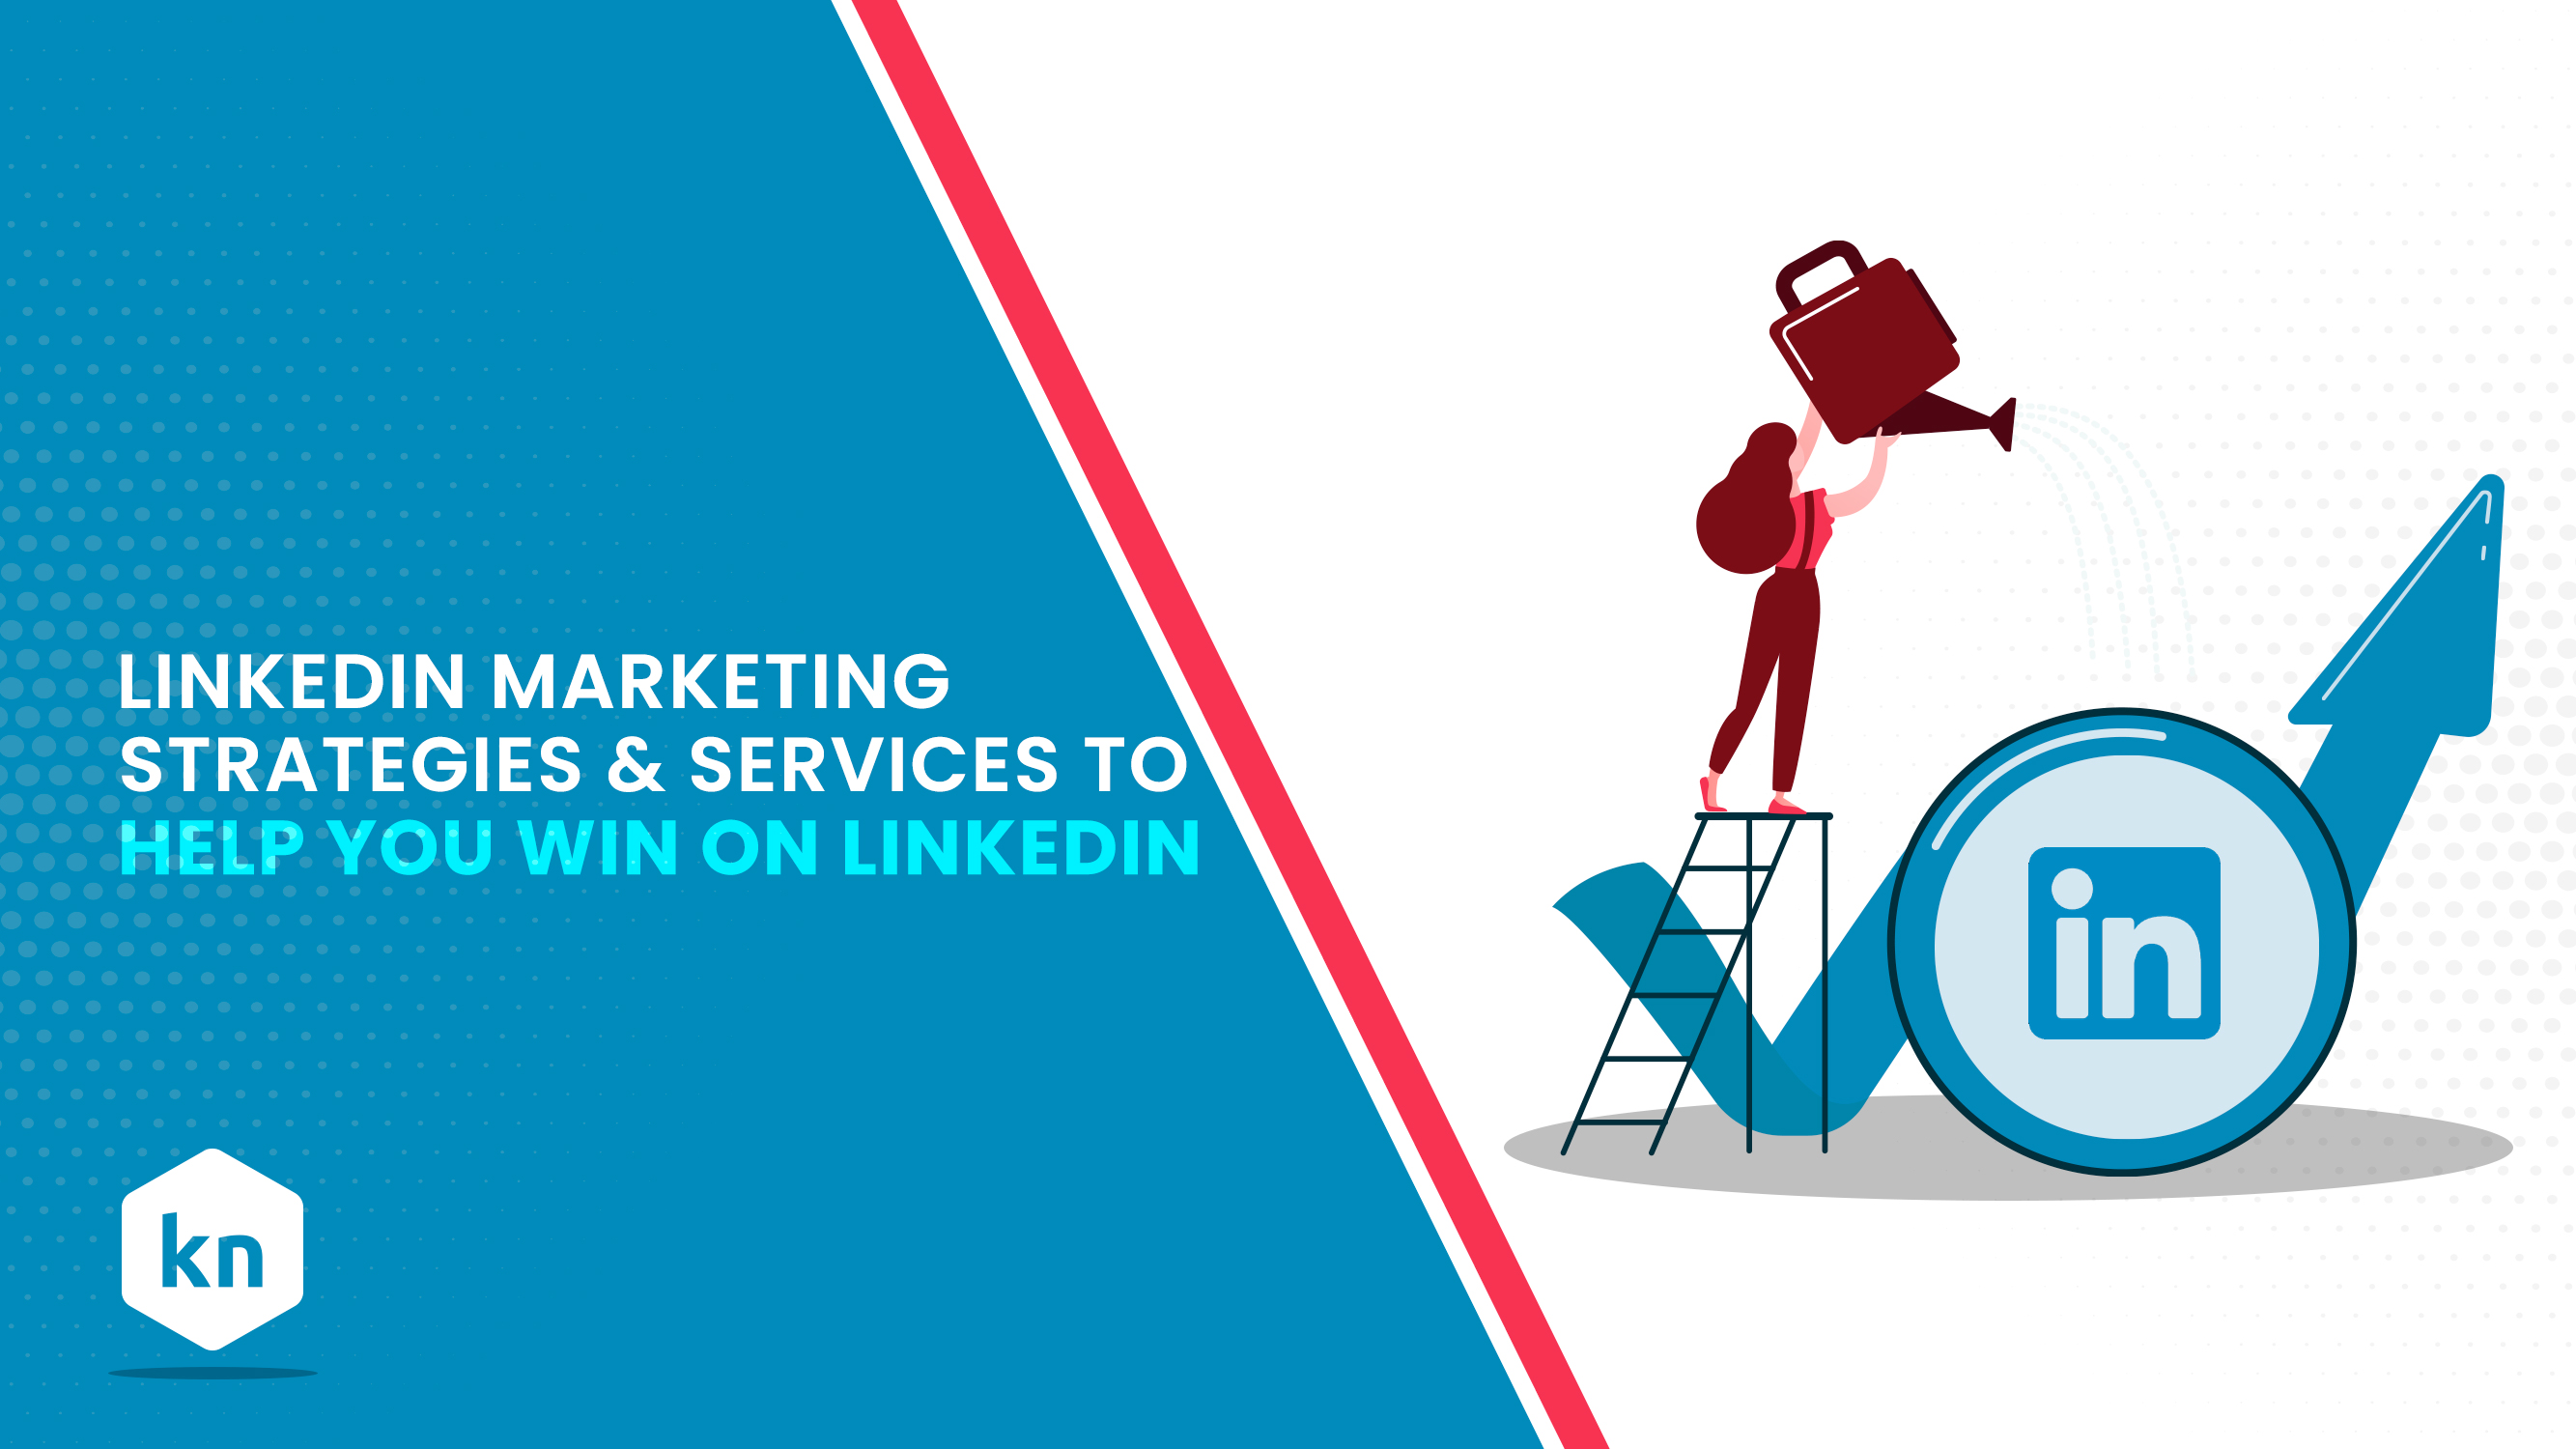 LinkedIn Marketing: Strategies & Services To Help You Win On LinkedIn